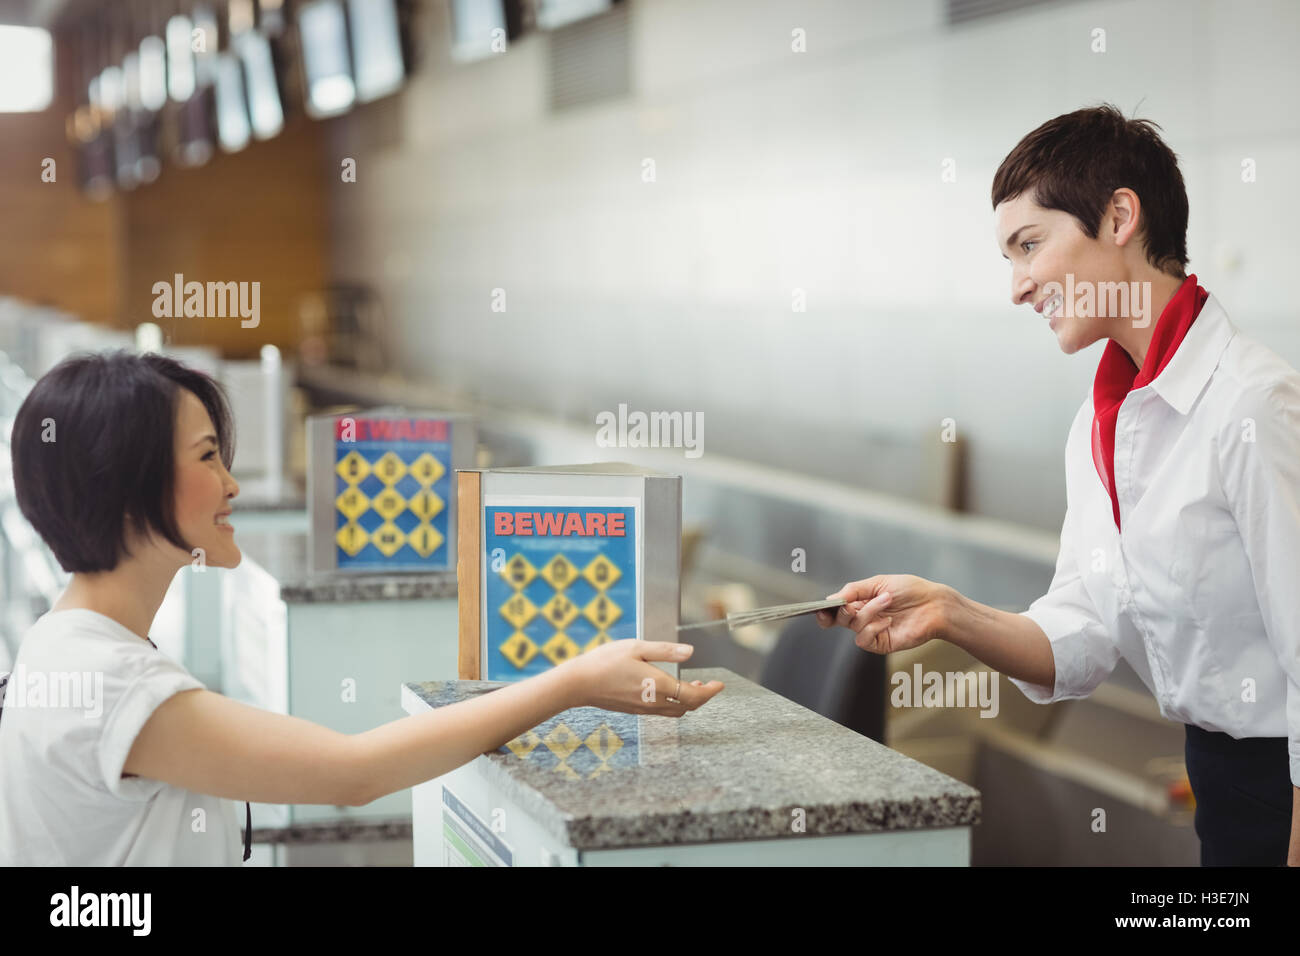 Airline check-in attendant handing passport to passenger - Stock Image